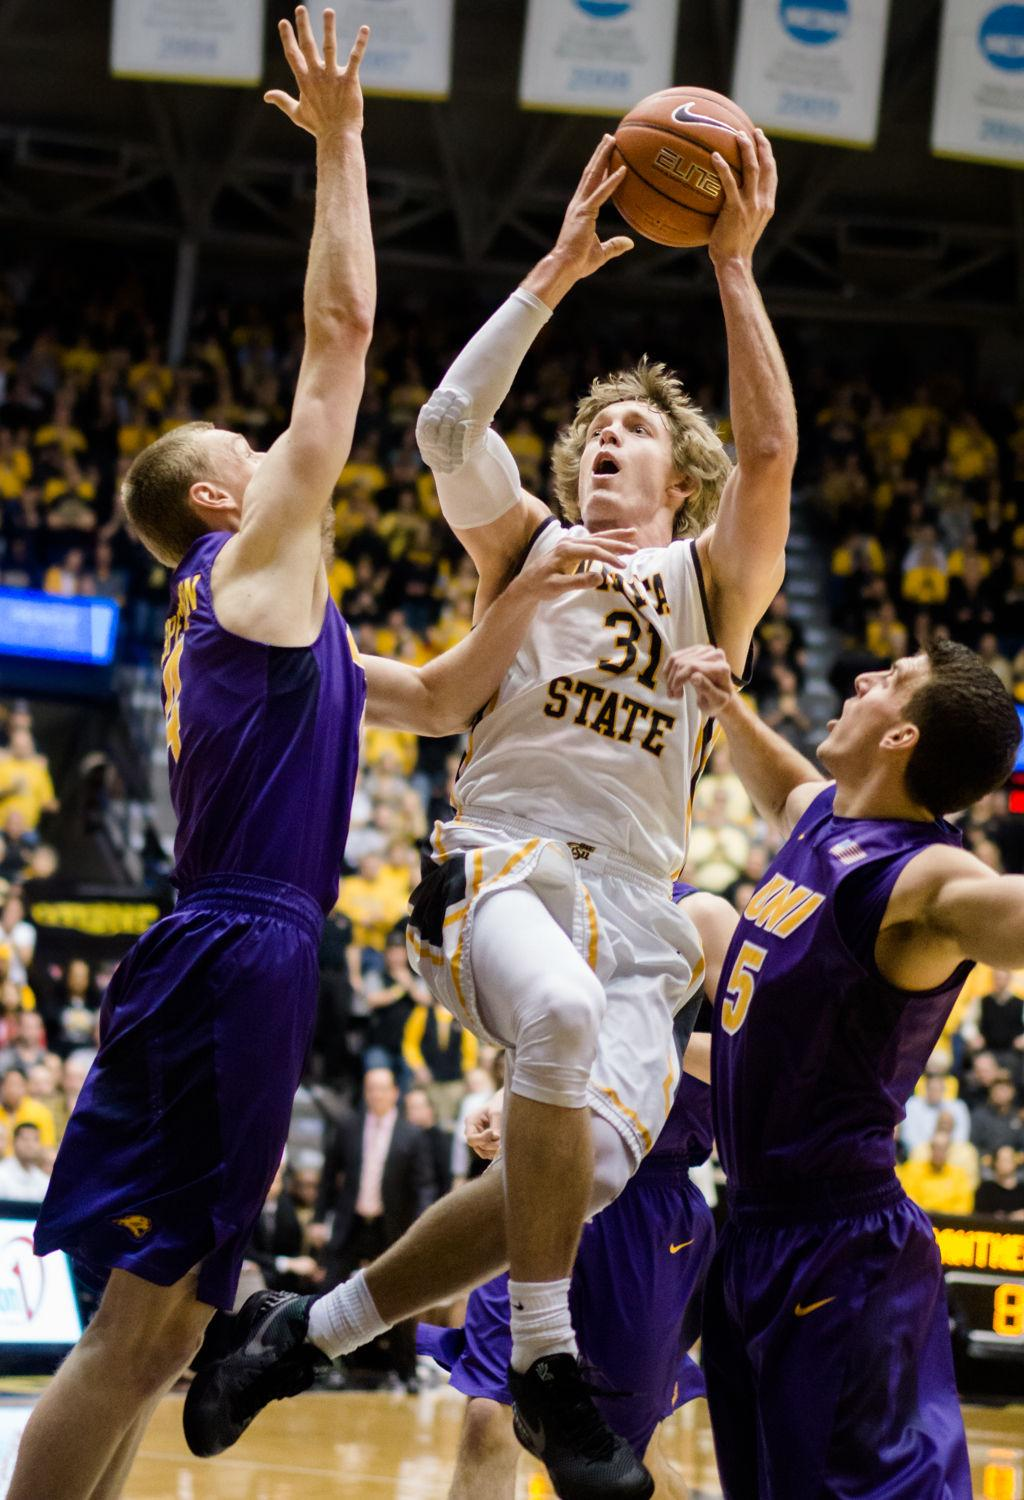 Ron Baker goes up for a shot against the University of Northern Iowa on Saturday. Baker finished with 12 points and was the leading scorer. The Panthers defeated the Shockers 53-50 to break WSU's home-winning streak.